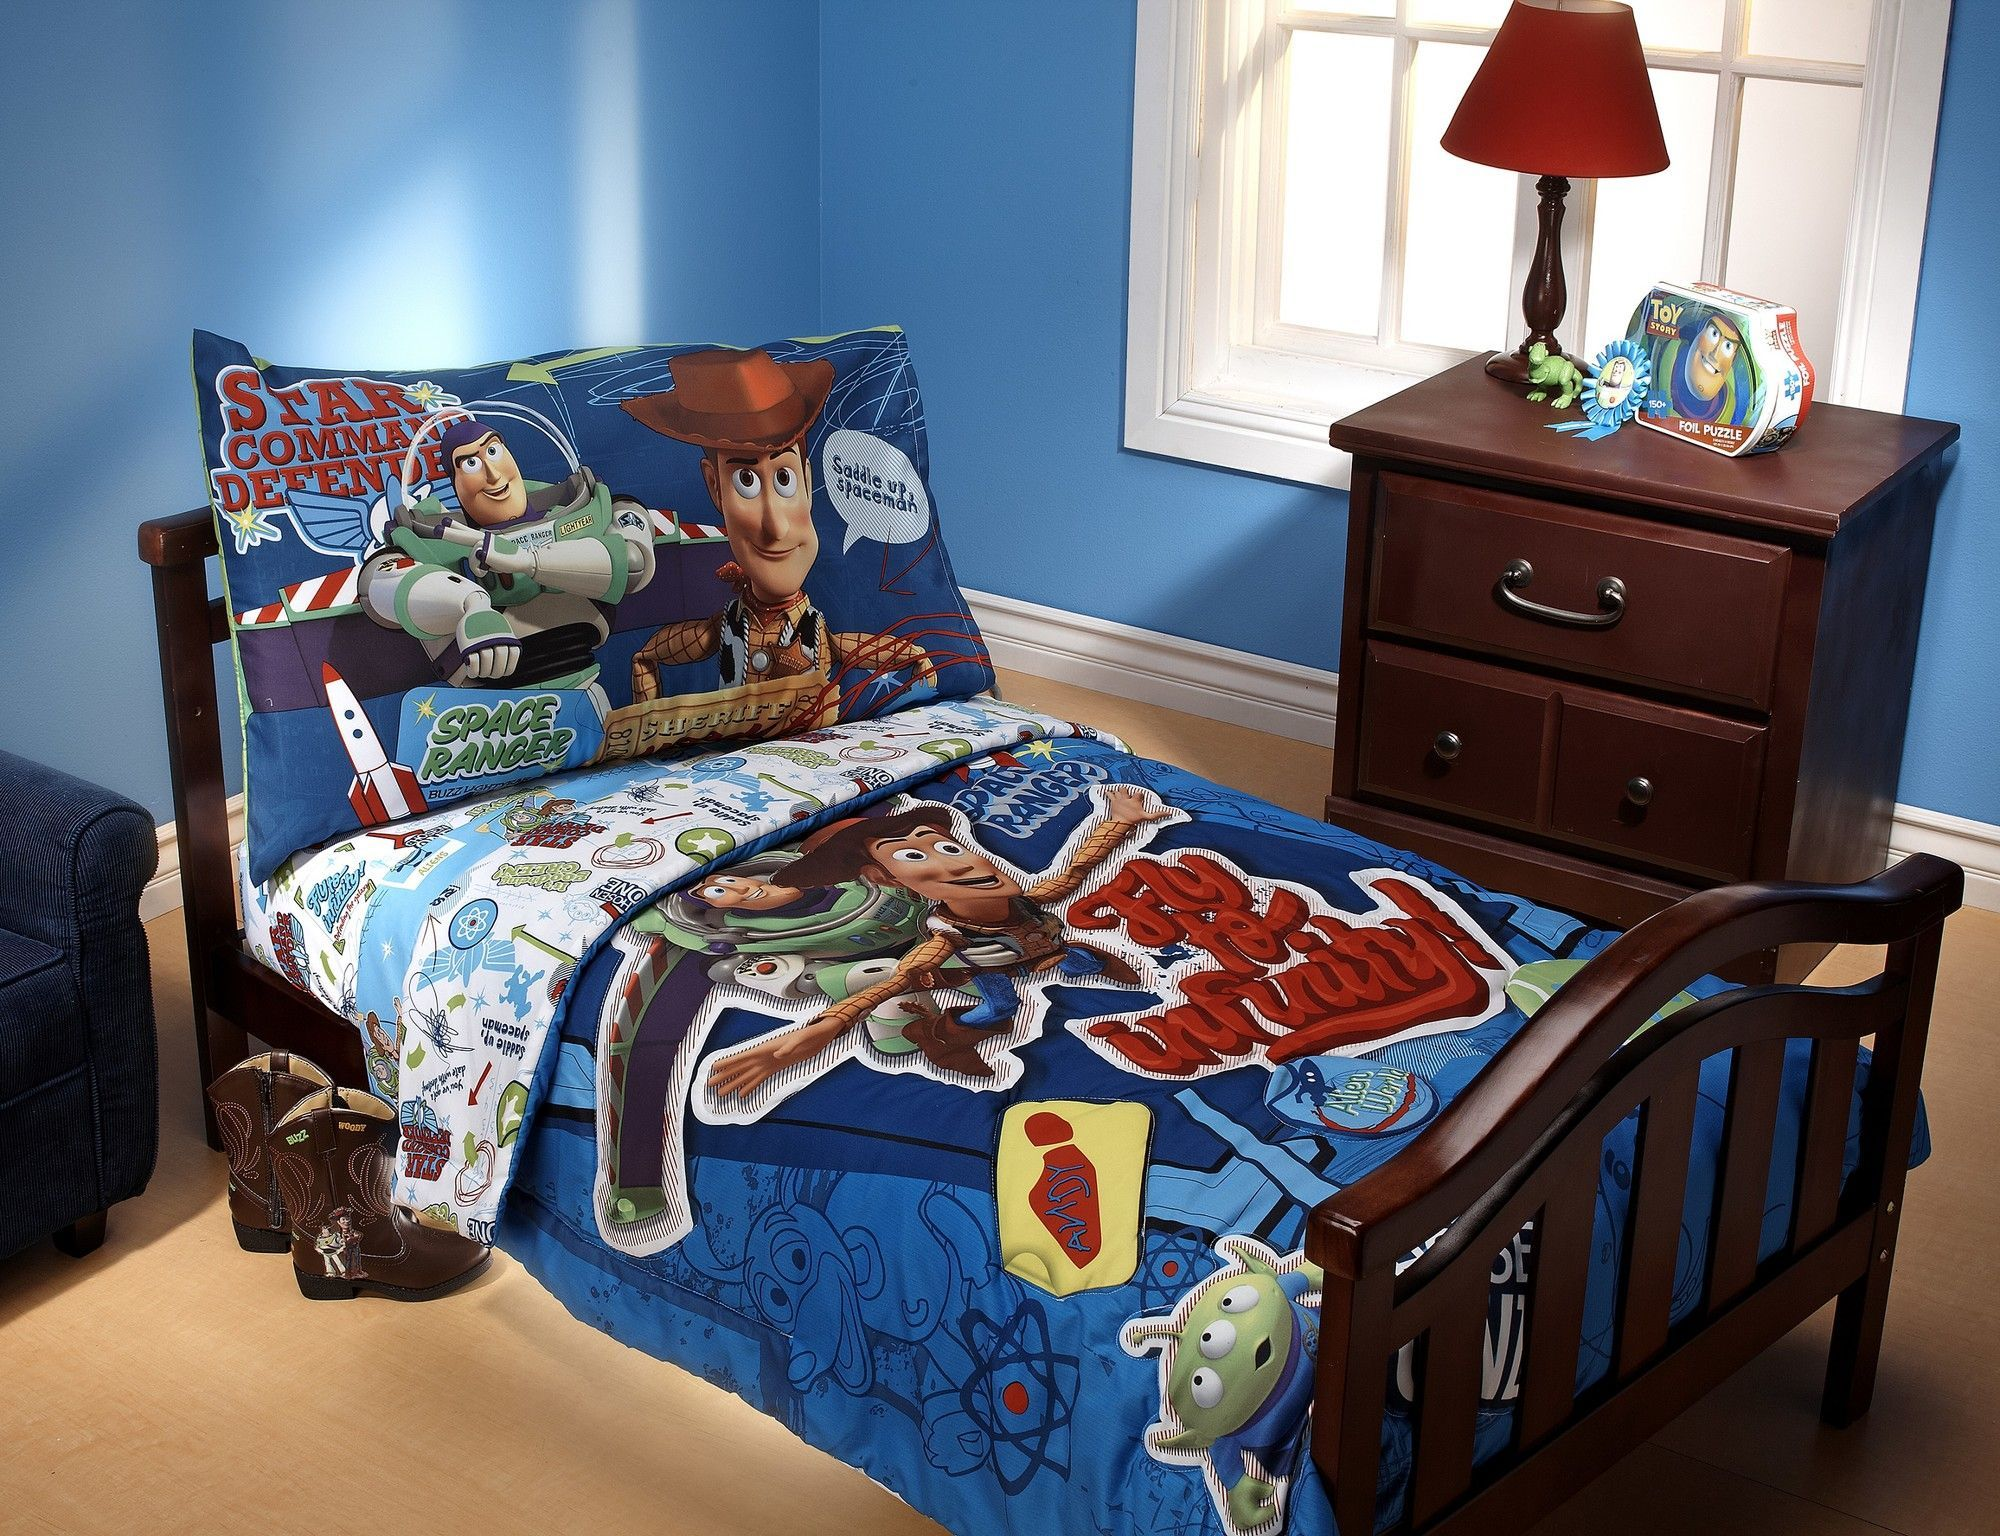 Toy story toddler bedding - Toy Story Fly To Infinity 4 Piece Toddler Bedding Set